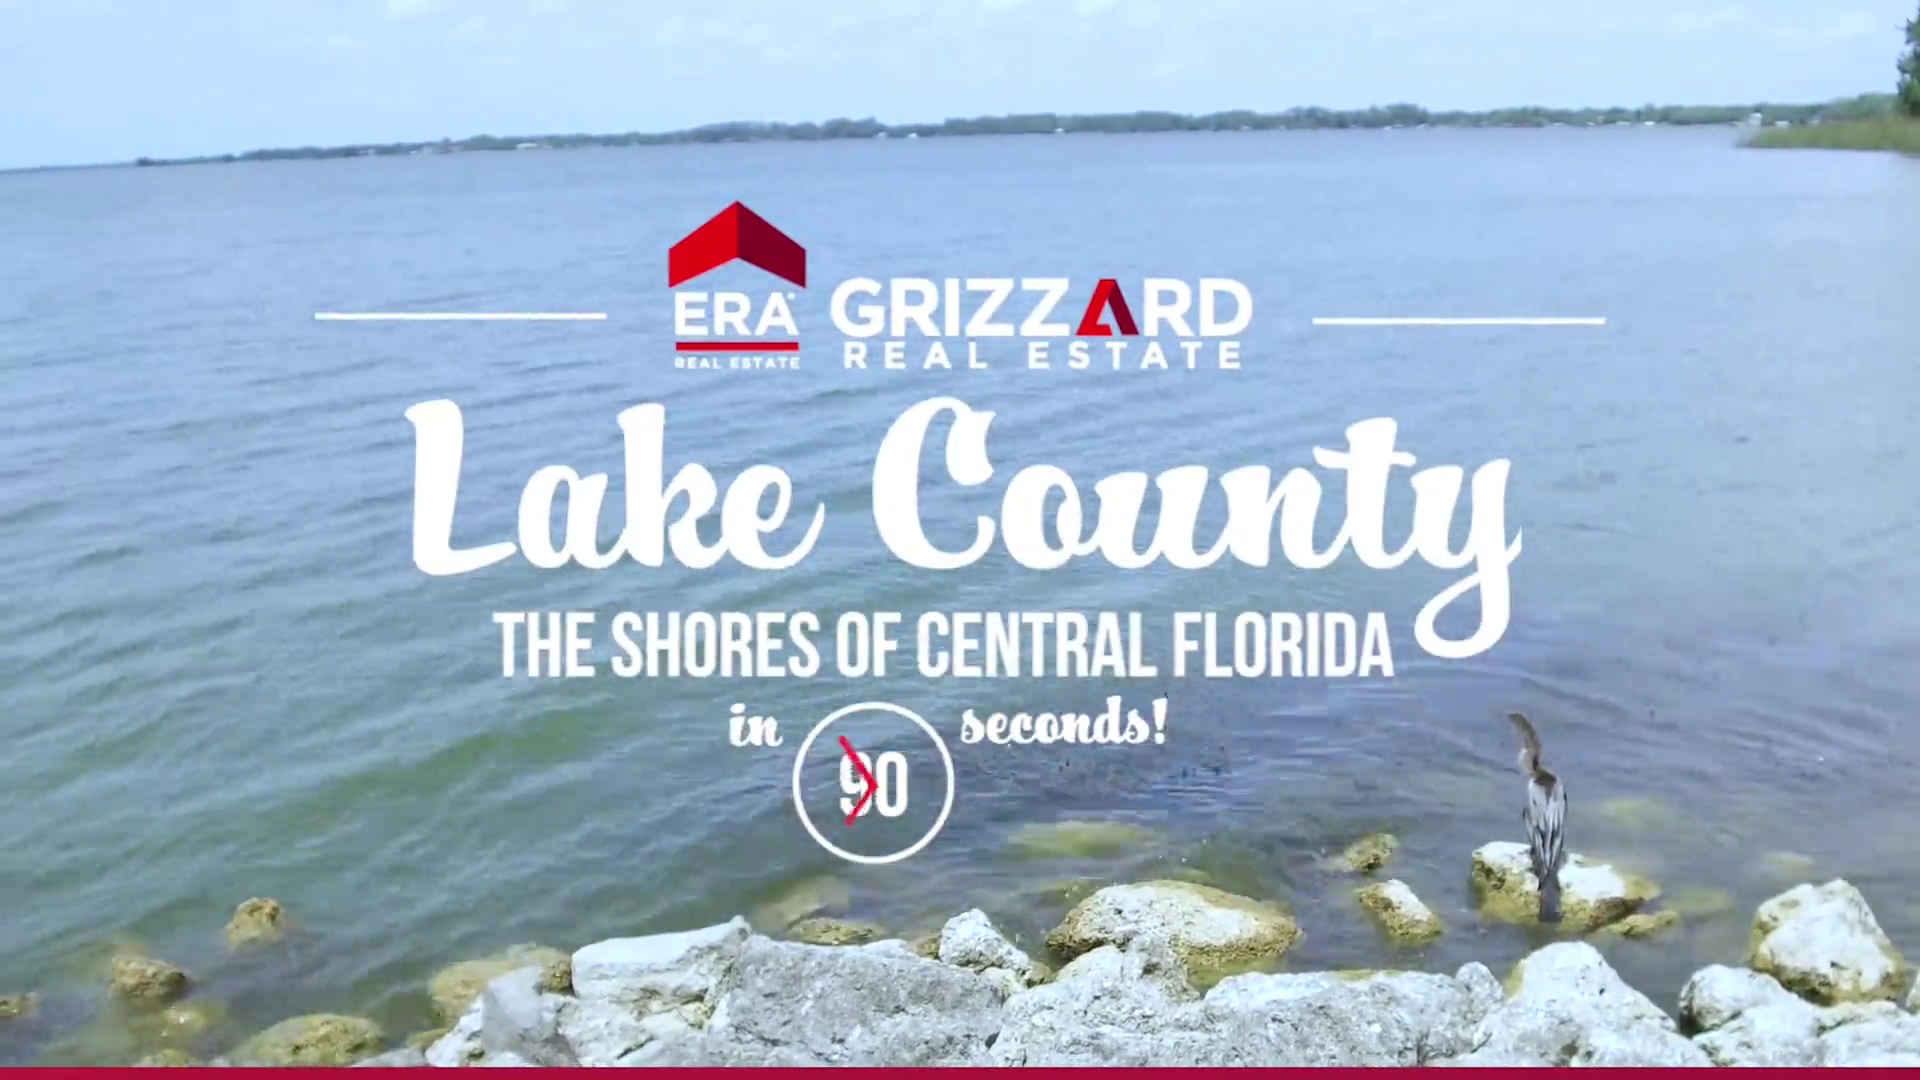 The Shores of Central Florida in 90 Seconds